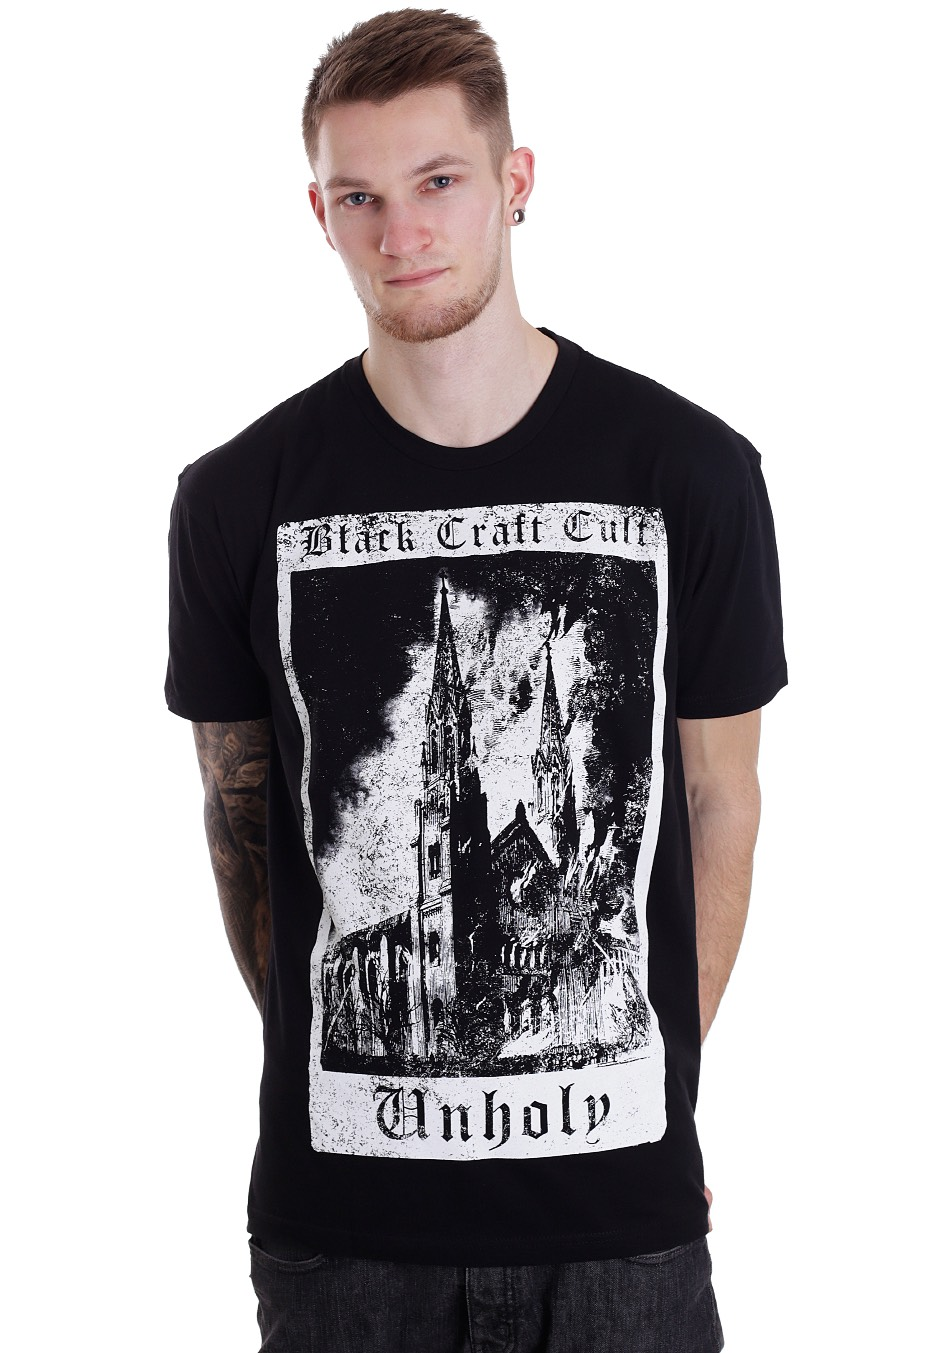 Streetwear Craft Tarot Cult Shirt Unholy T Shop Black TFKcu351lJ